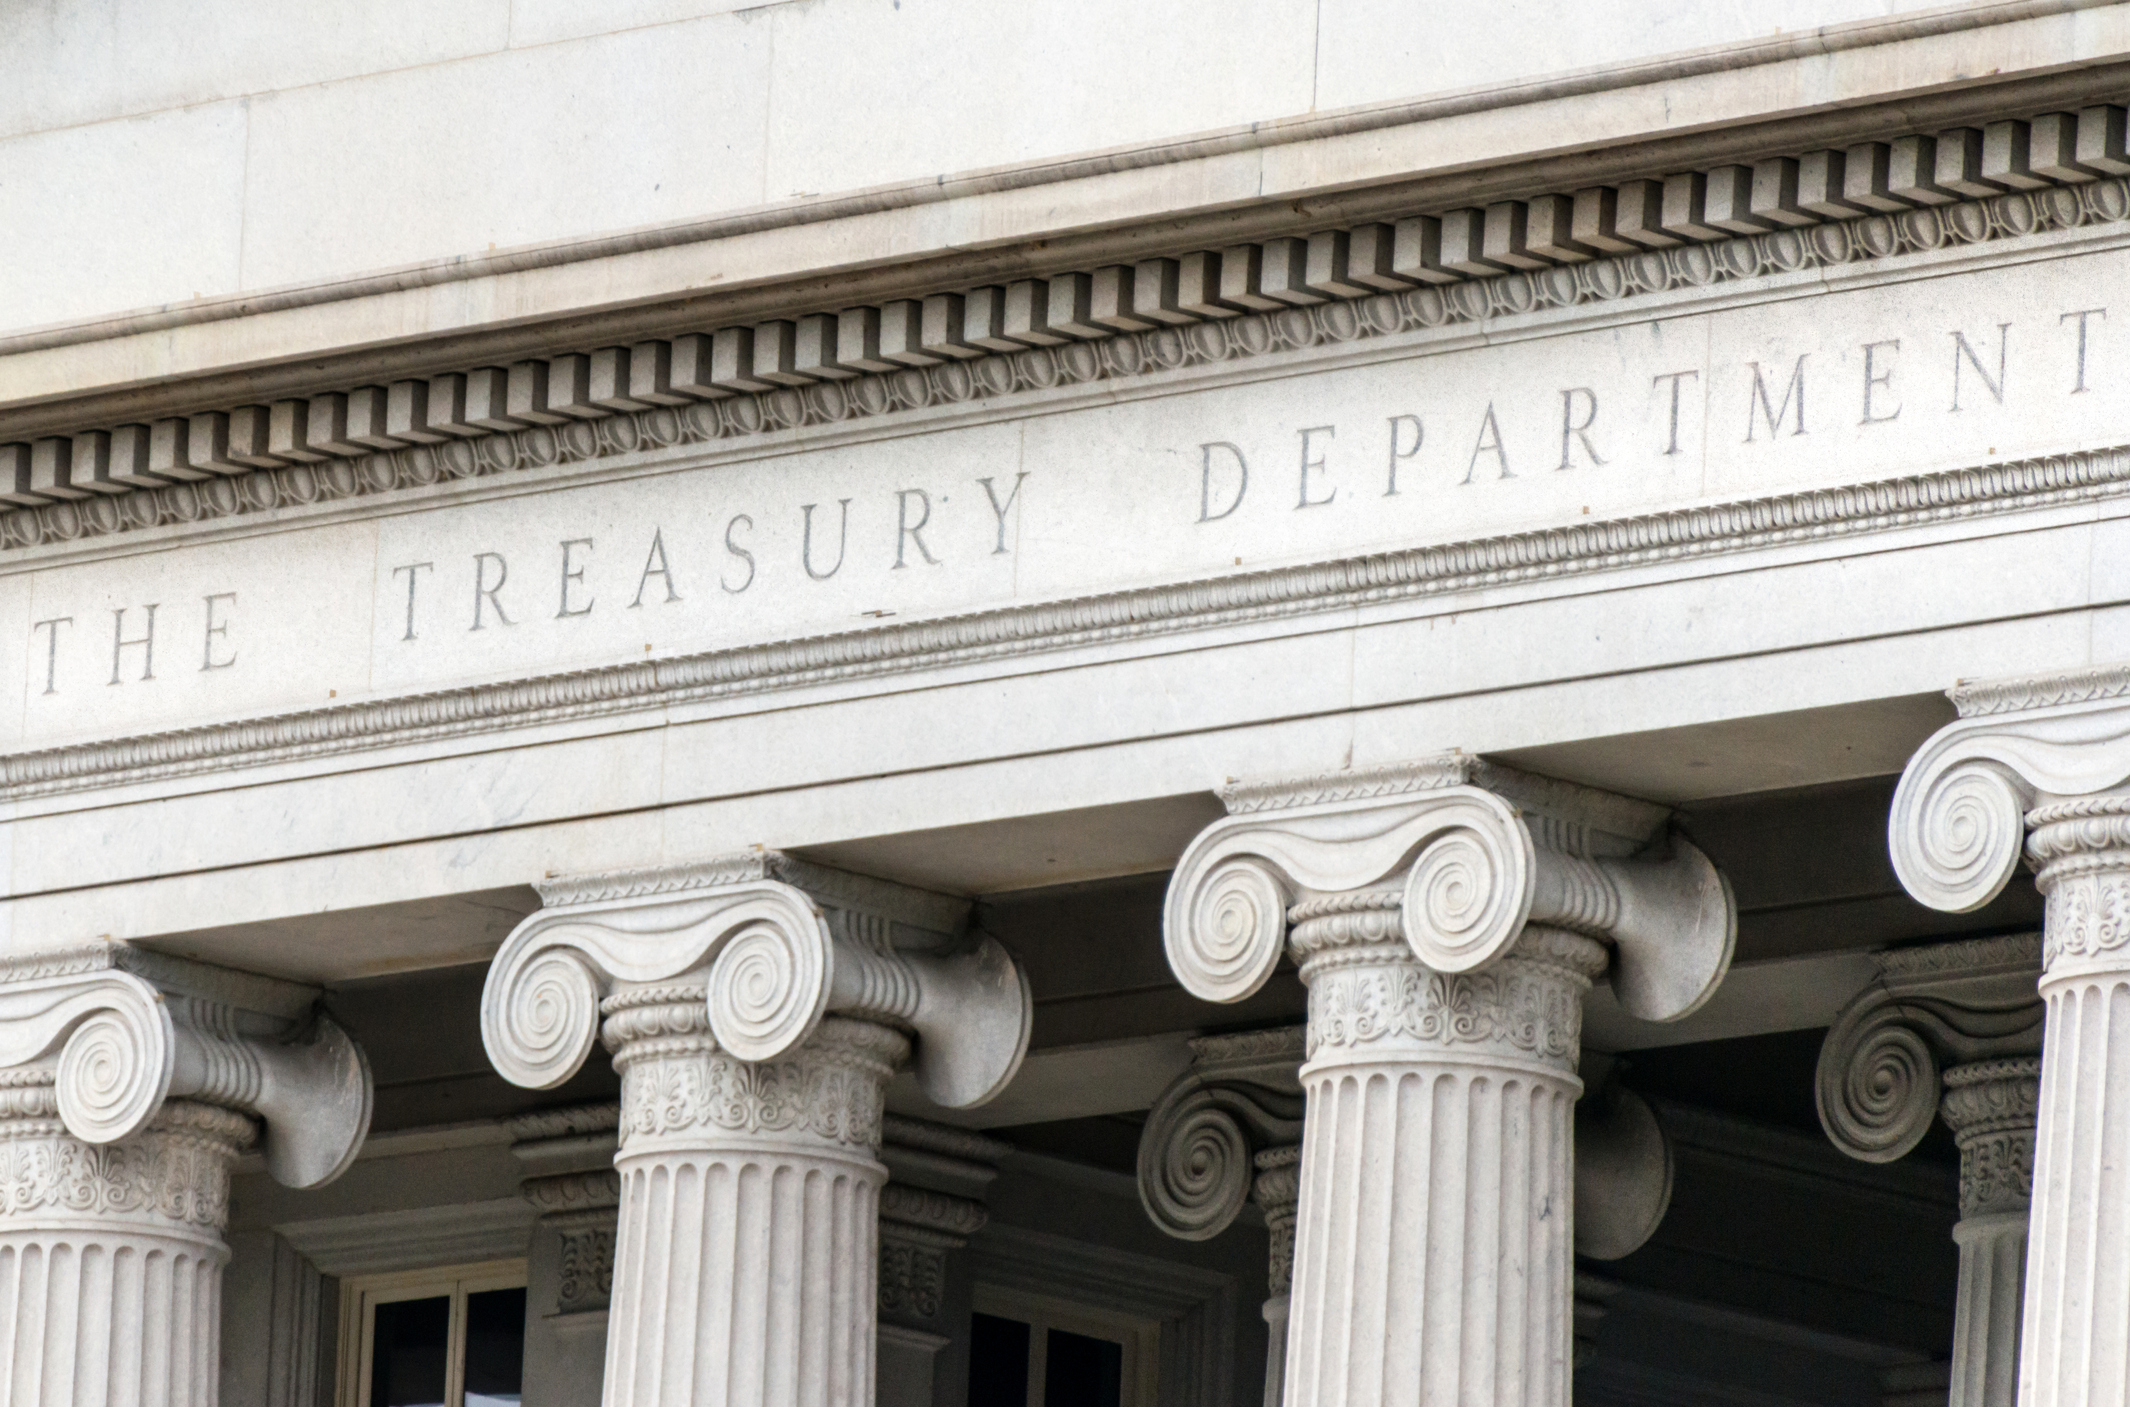 U.S. Treasury Department sign in Washington D.C. building facade. The U.S. budget deficit is set to widen to $1 trillion by fiscal year 2020, two years sooner than previously estimated, according to the Congressional Budget Office findings Wednesday.